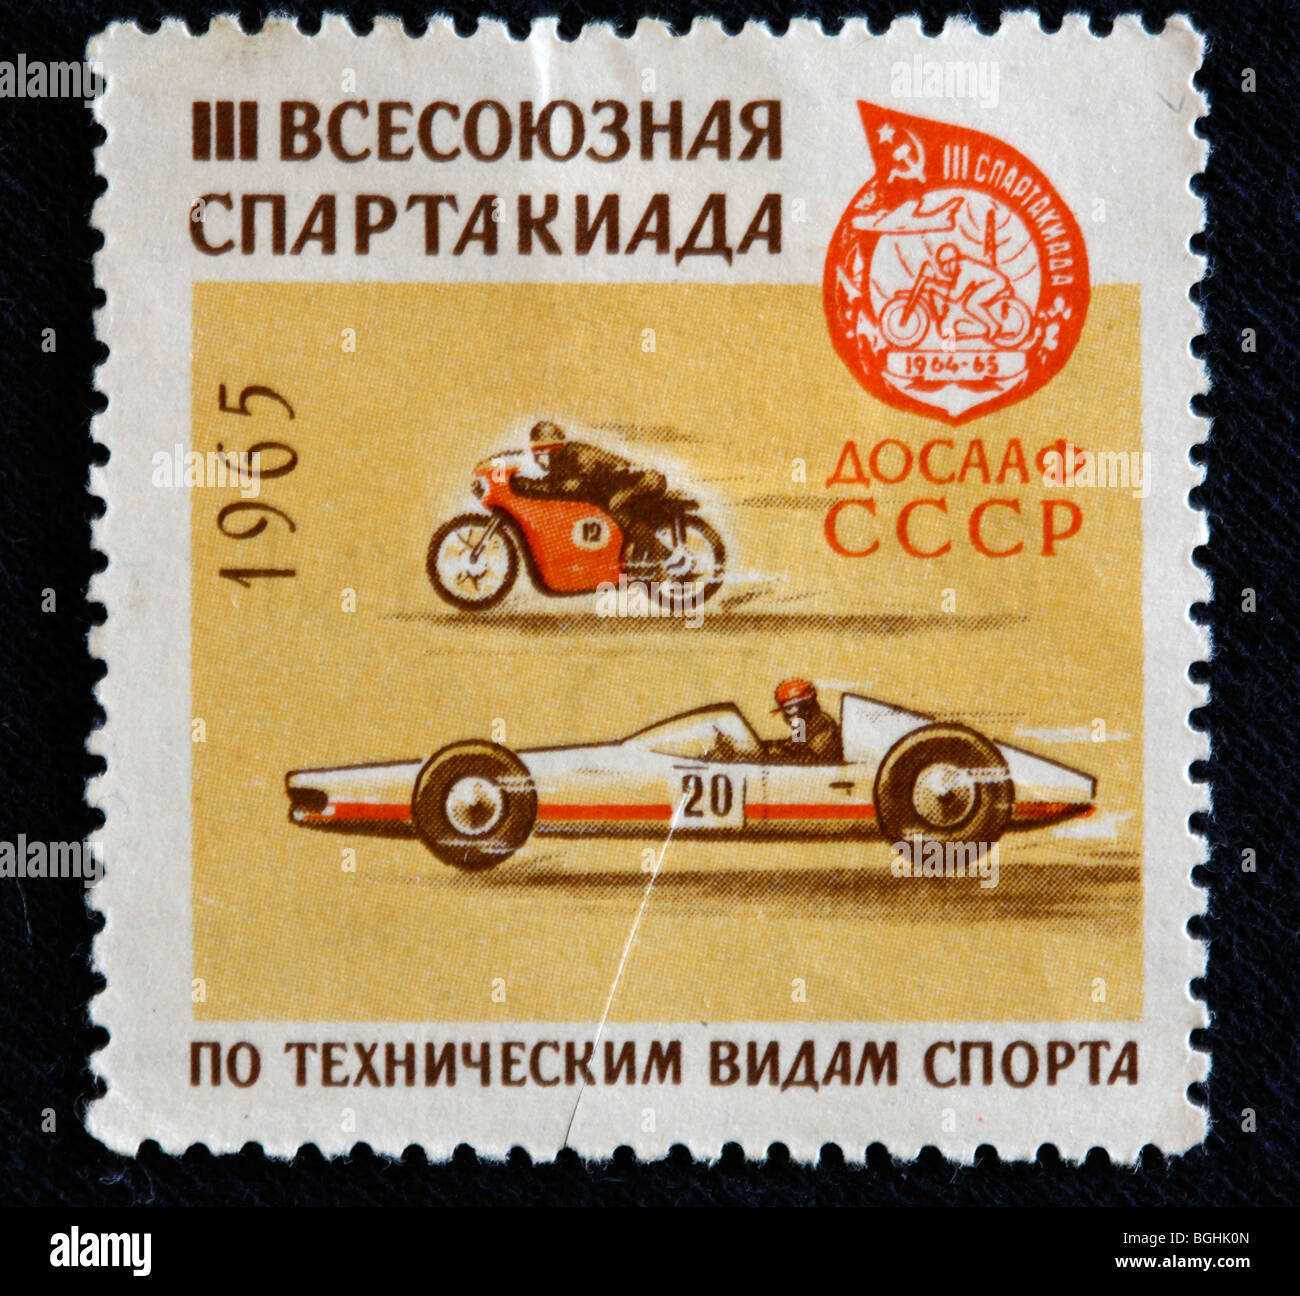 Car racing, postage stamp, USSR, 1965 - Stock Image